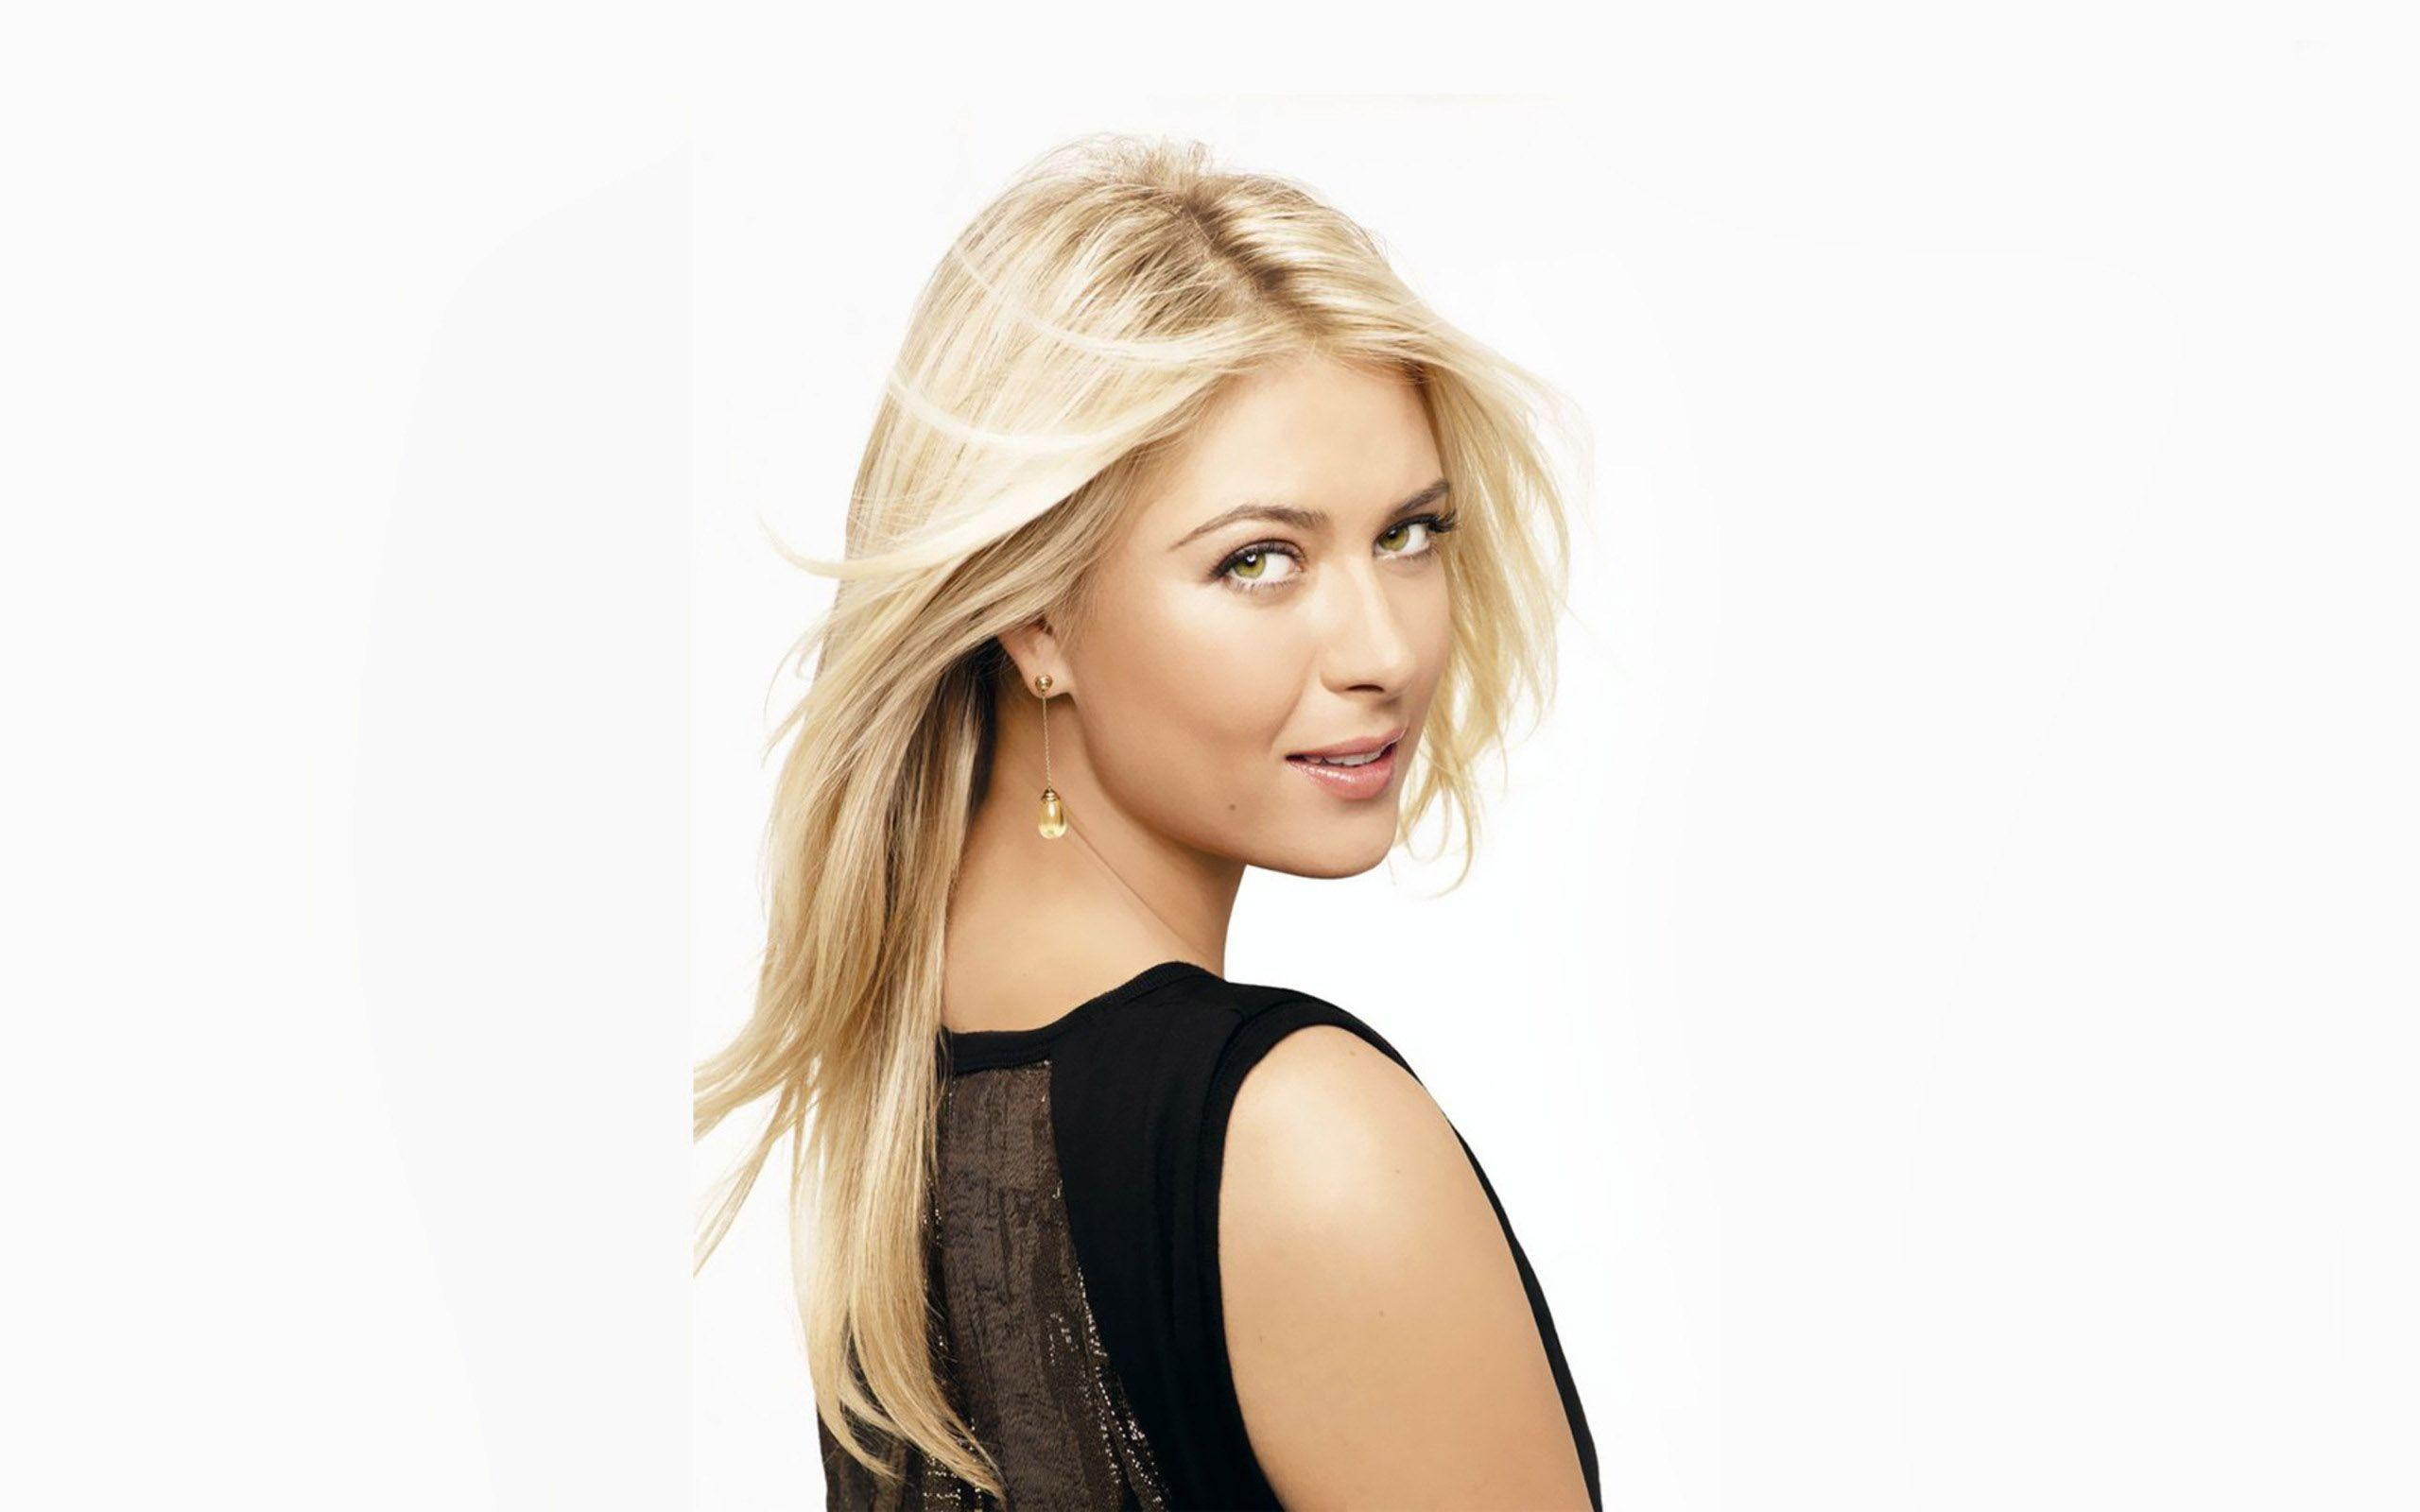 Ultra HD Maria Sharapova Wallpapers SUDJ37K   4USkY 2560x1600